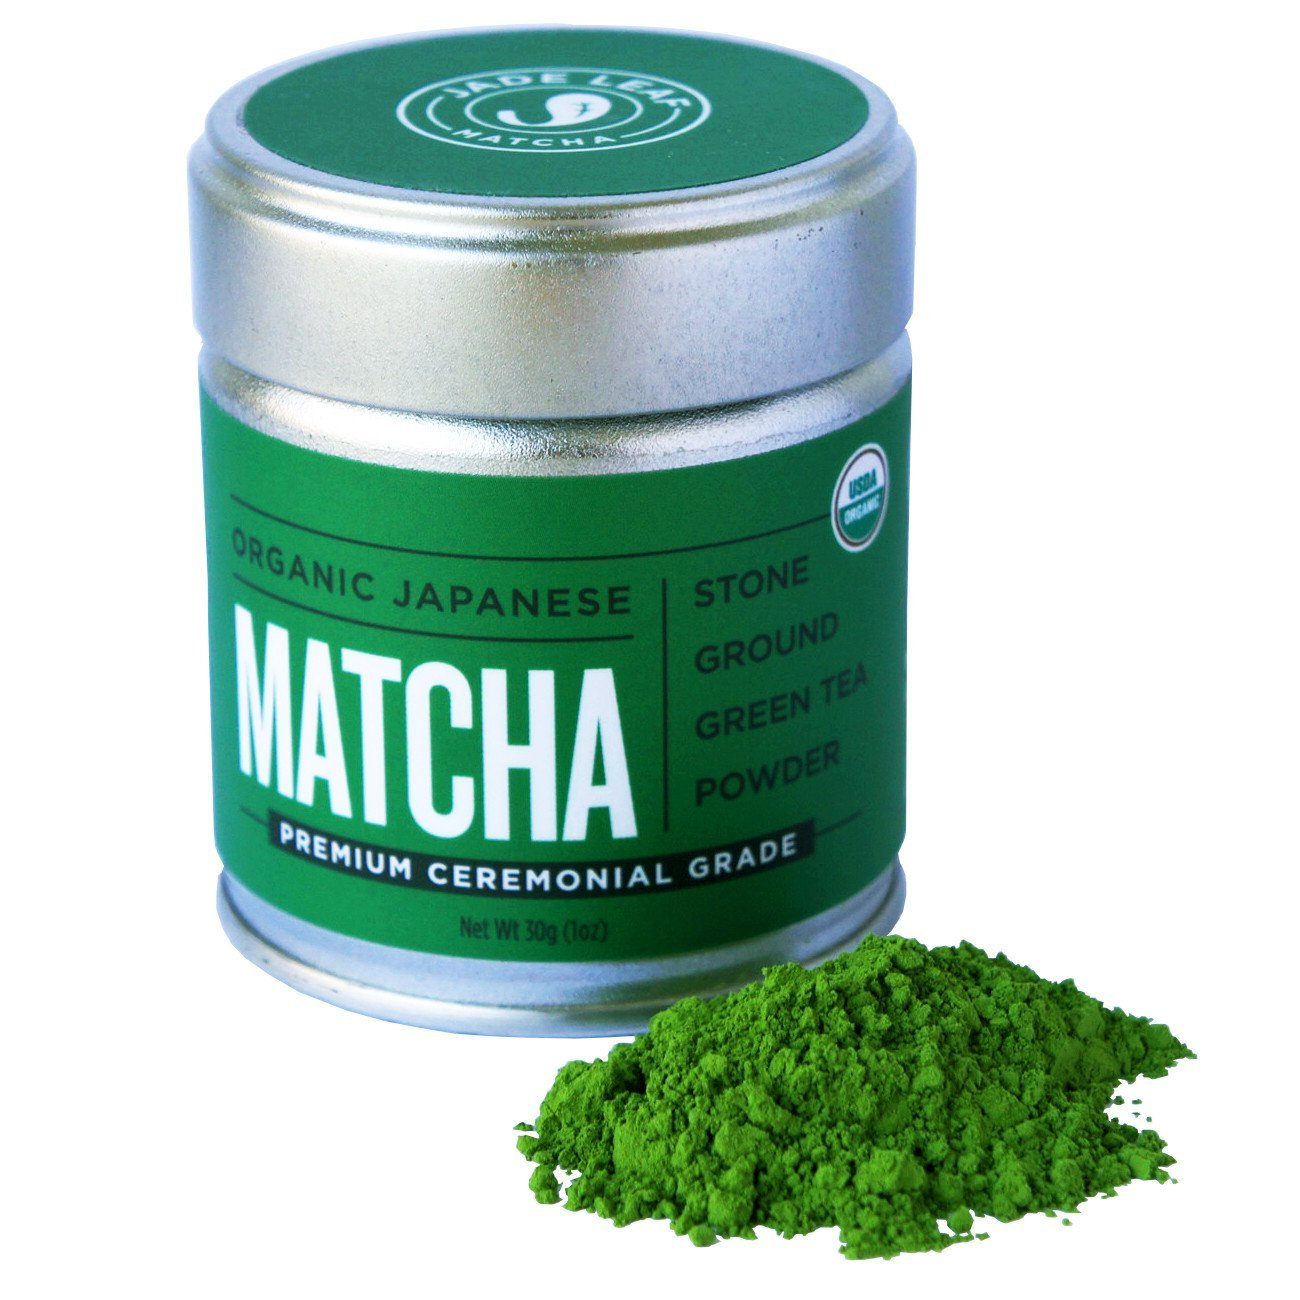 Jade Leaf Matcha Green Tea Powder - USDA Organic - Premium Ceremonial Grade (For Sipping as Tea) - Authentic Japanese Origin - Antioxidants, Energy [30g Tin] by Jade Leaf Matcha (Image #1)